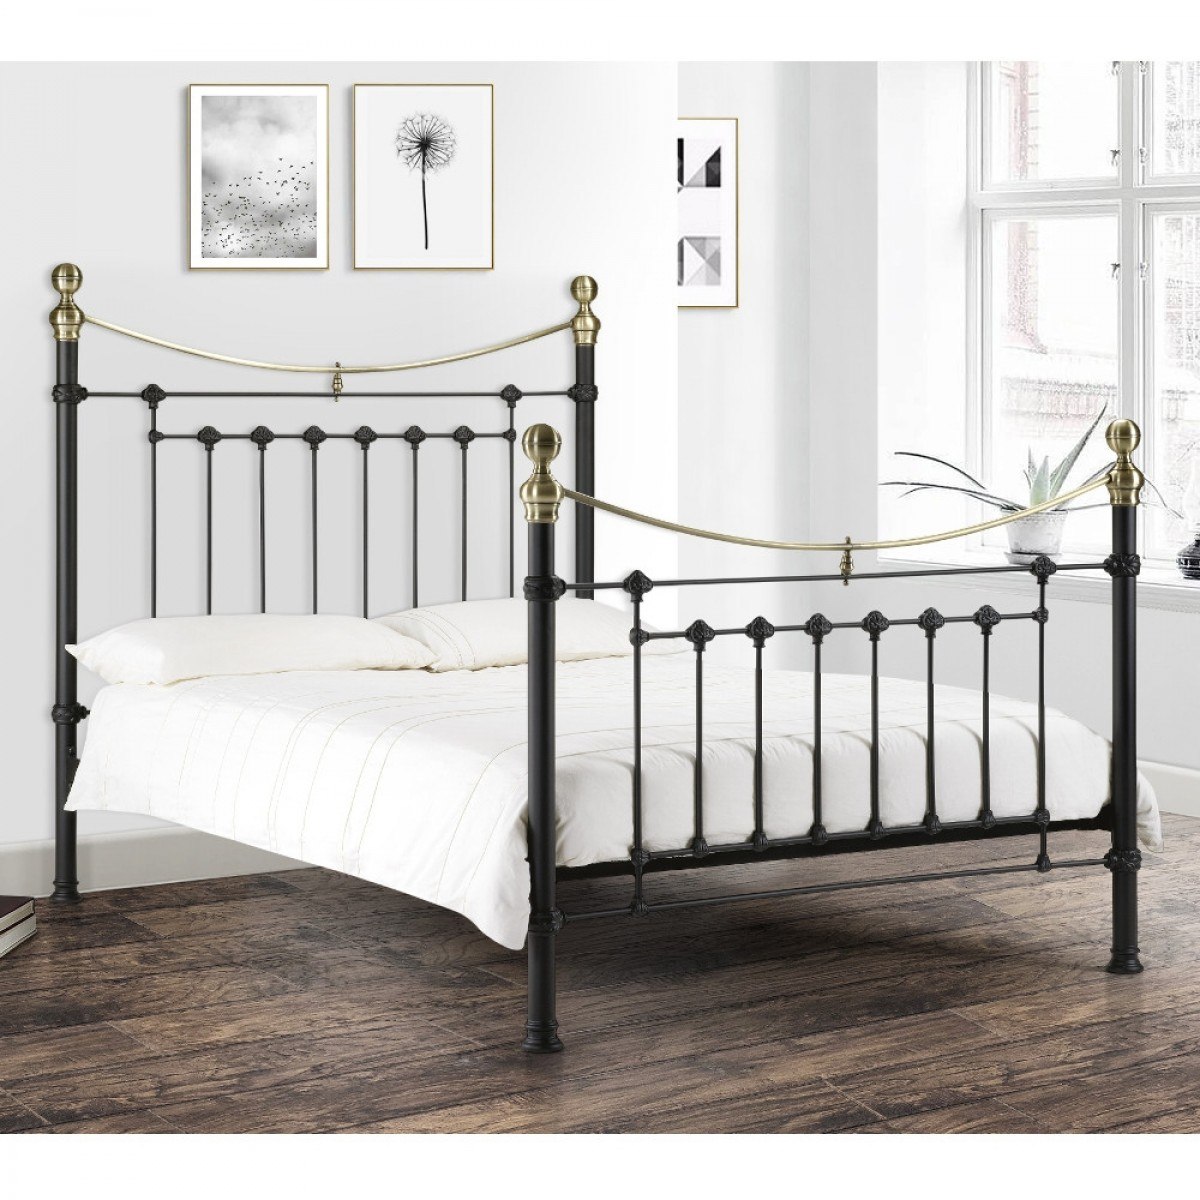 Victoria Satin Black Metal Bed